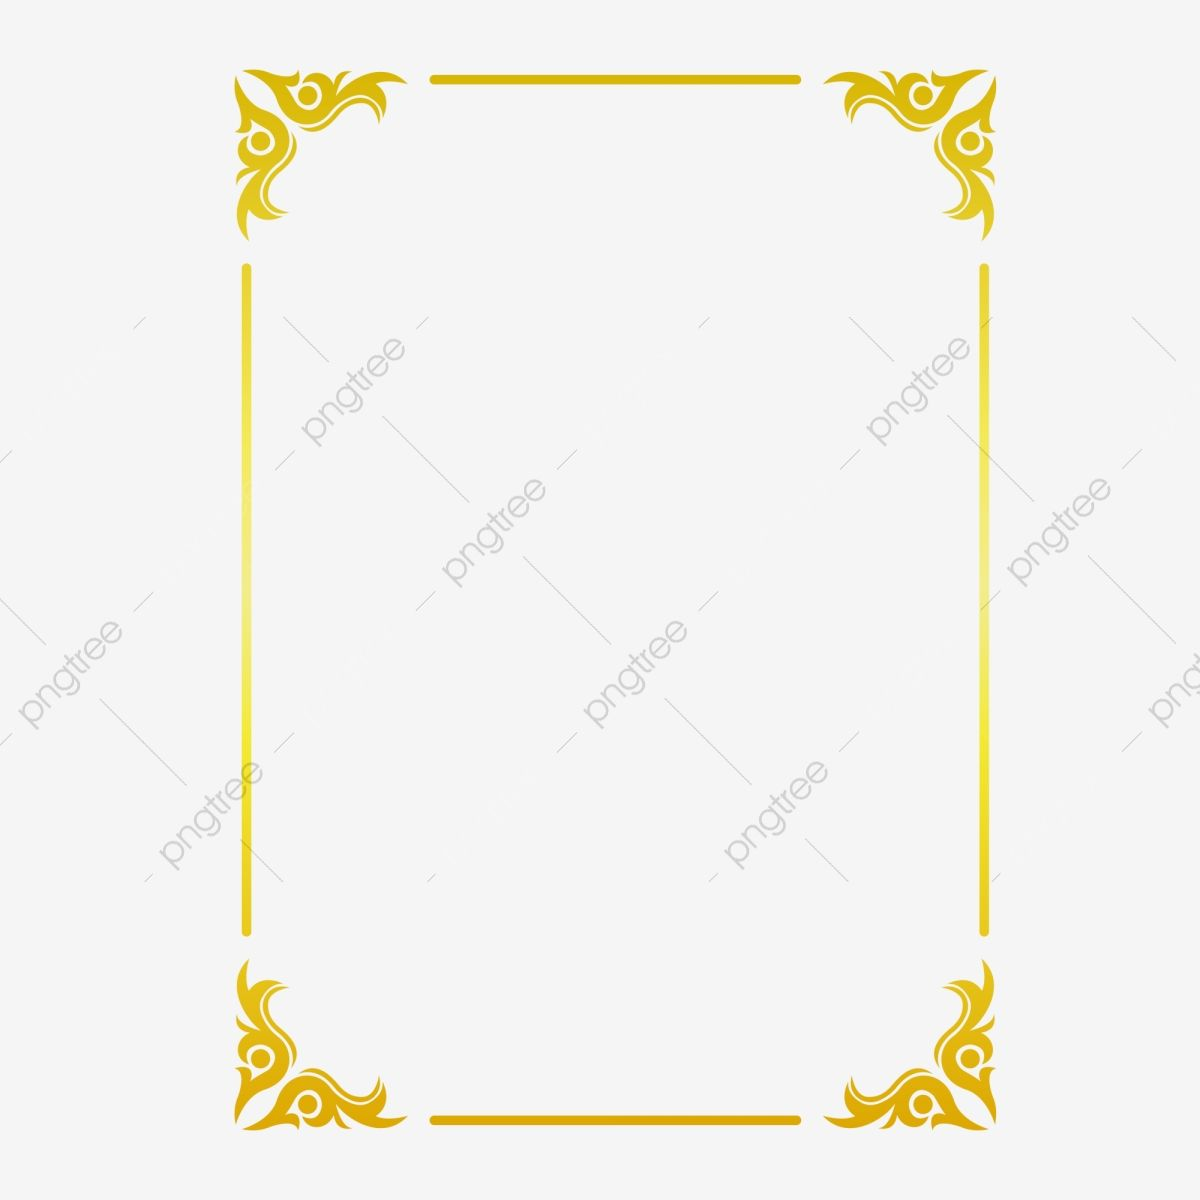 Golden Border Warm Color Border Frame Picture Frame Gold Rectangle Clipart Hot Stamping Style Bronzing Border Png And Vector With Transparent Background For Clip Art Frames Borders Gold Graphic Design